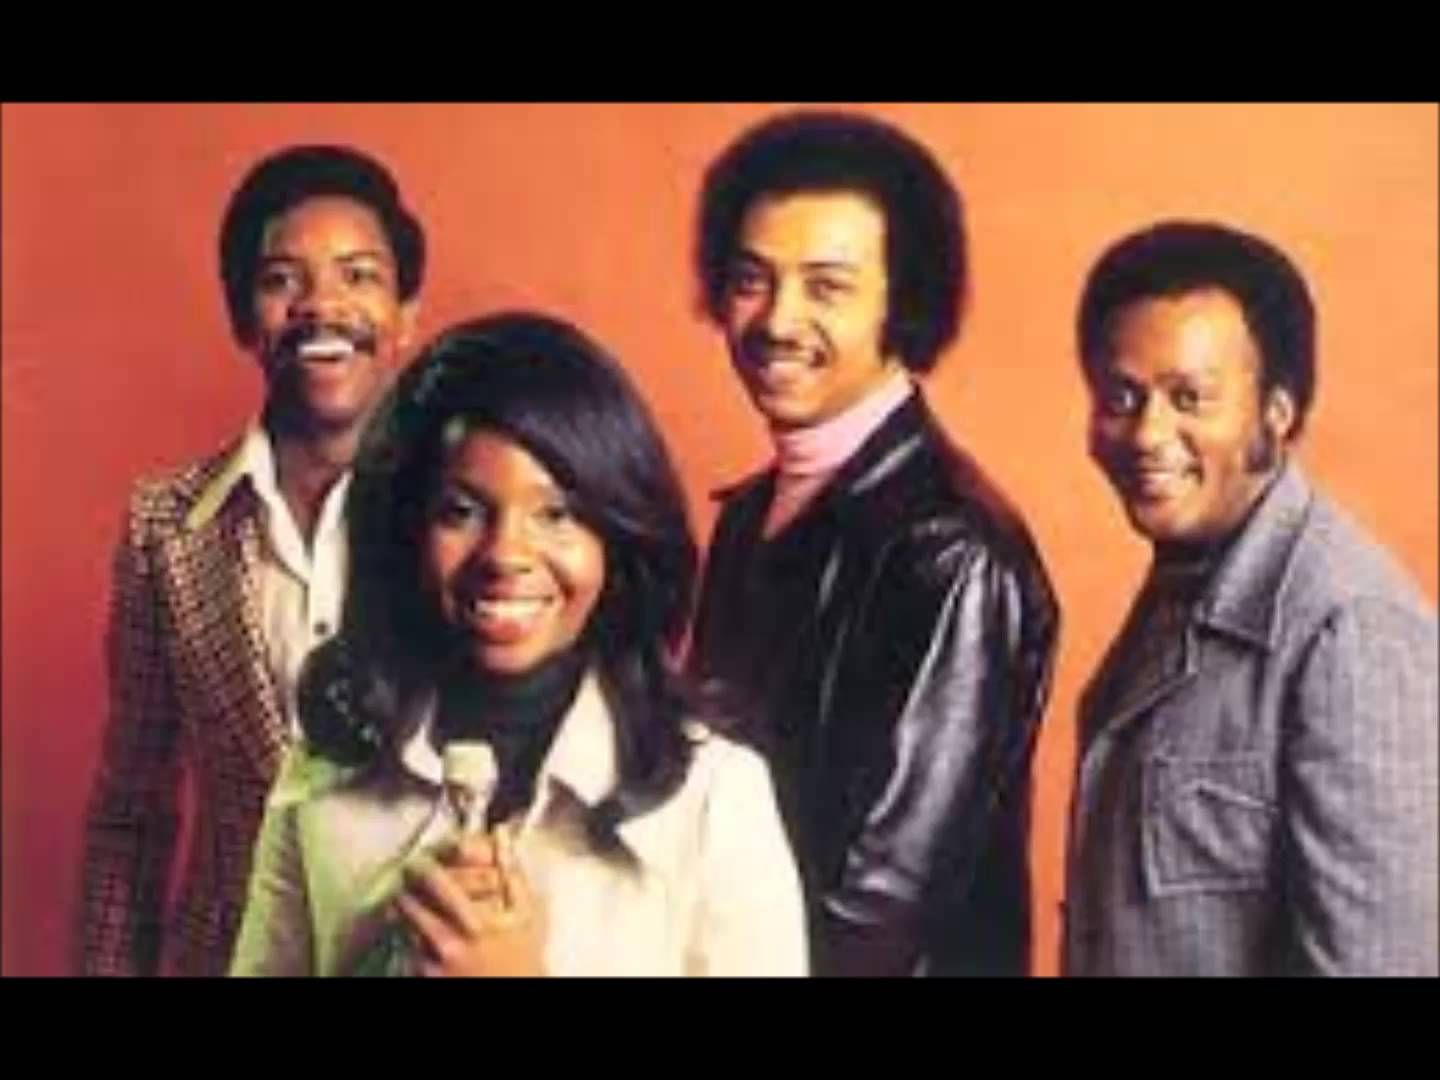 Gladys Knight The Pips End Of The Road Gladys Knight Motown Singer